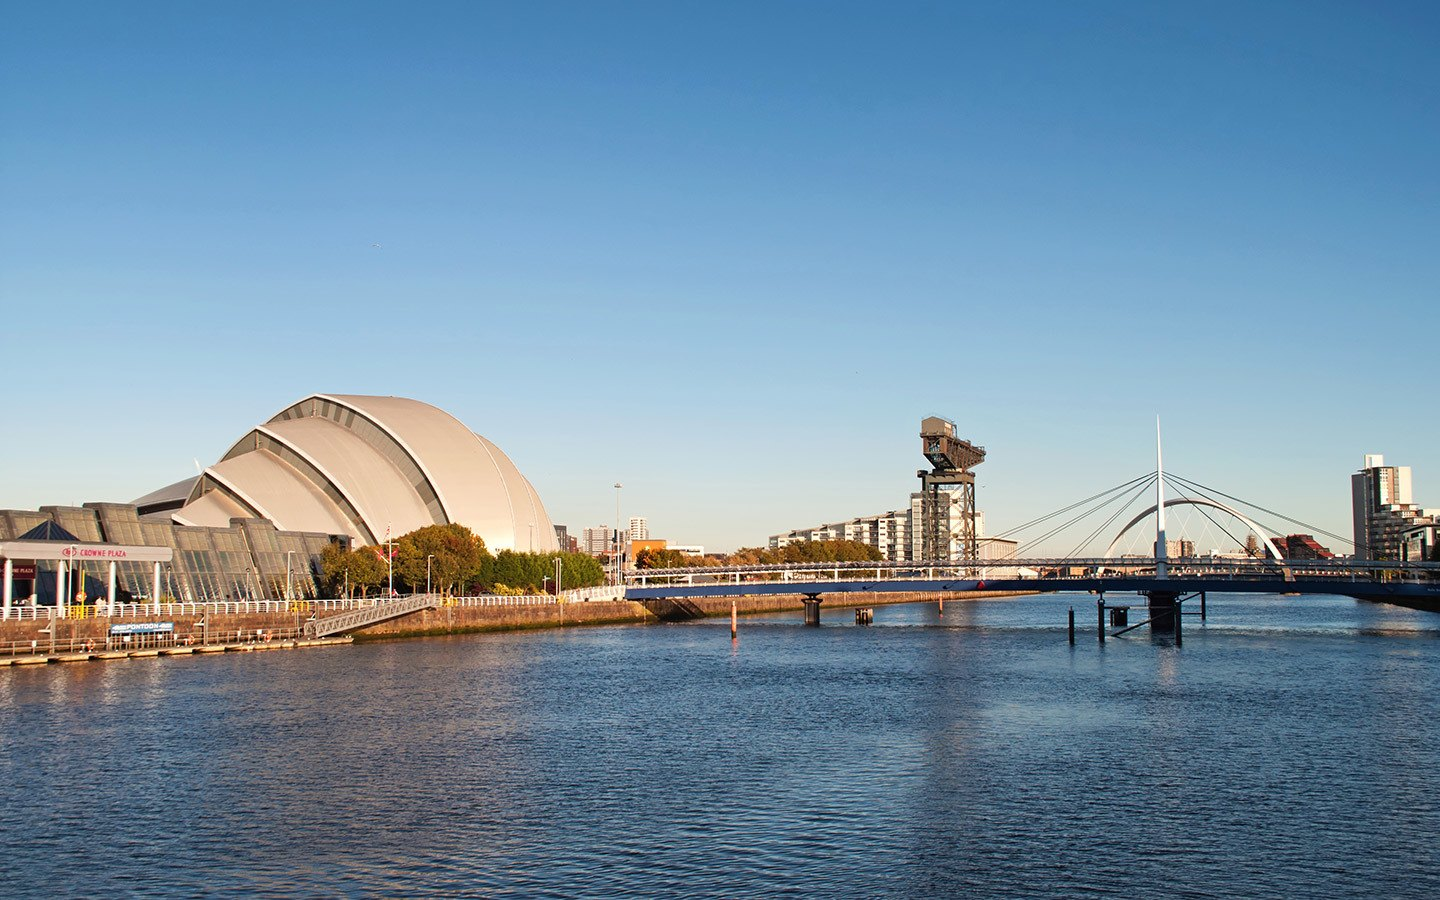 Along the Clyde in Glasgow